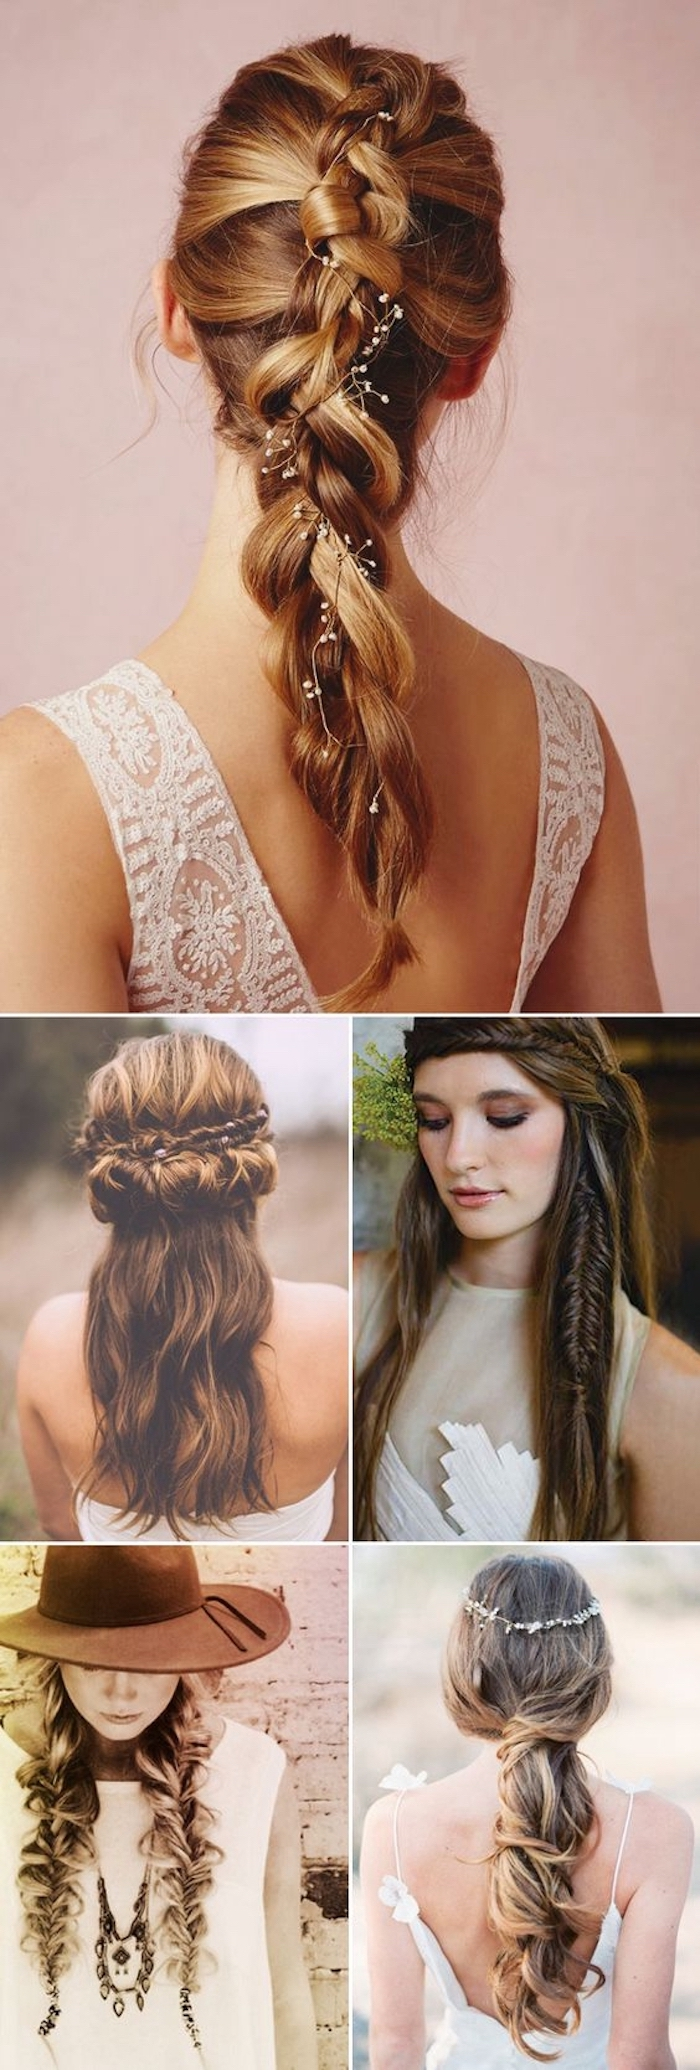 different hairstyles, blondes and brunettes, photo collage, box braids hairstyles, hair accessories